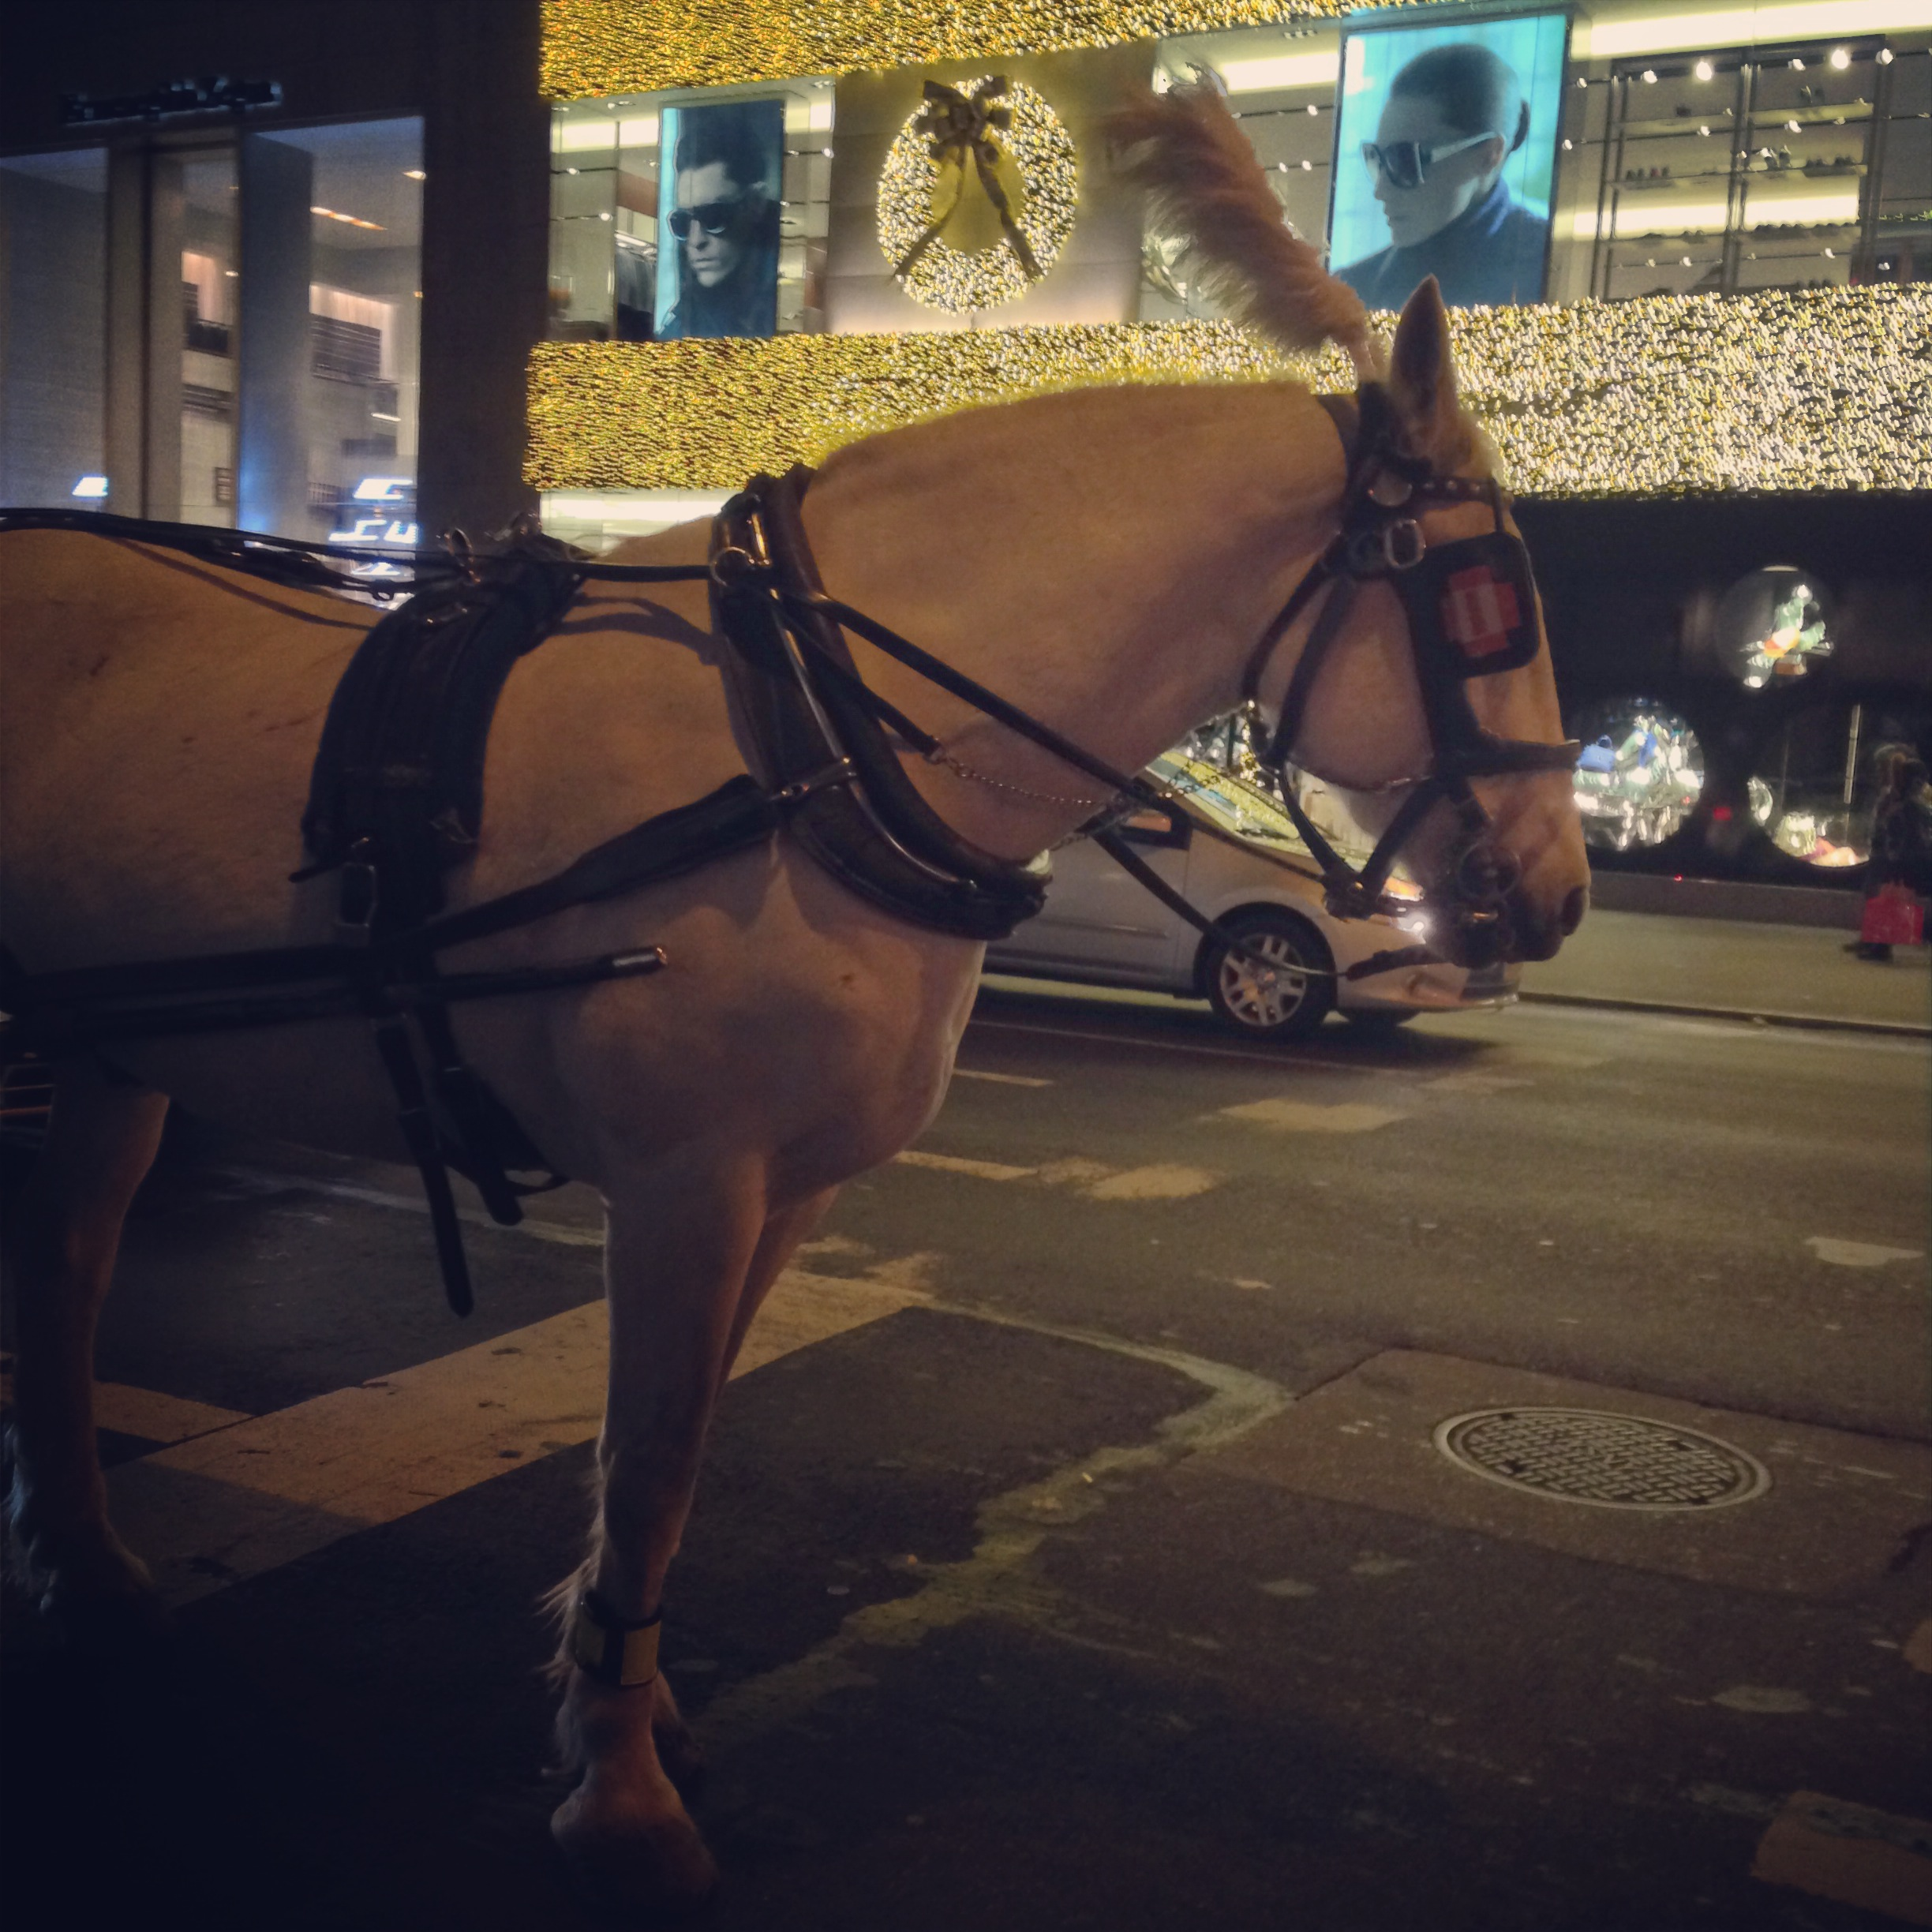 horse drawn carriage NYC Dec 2013